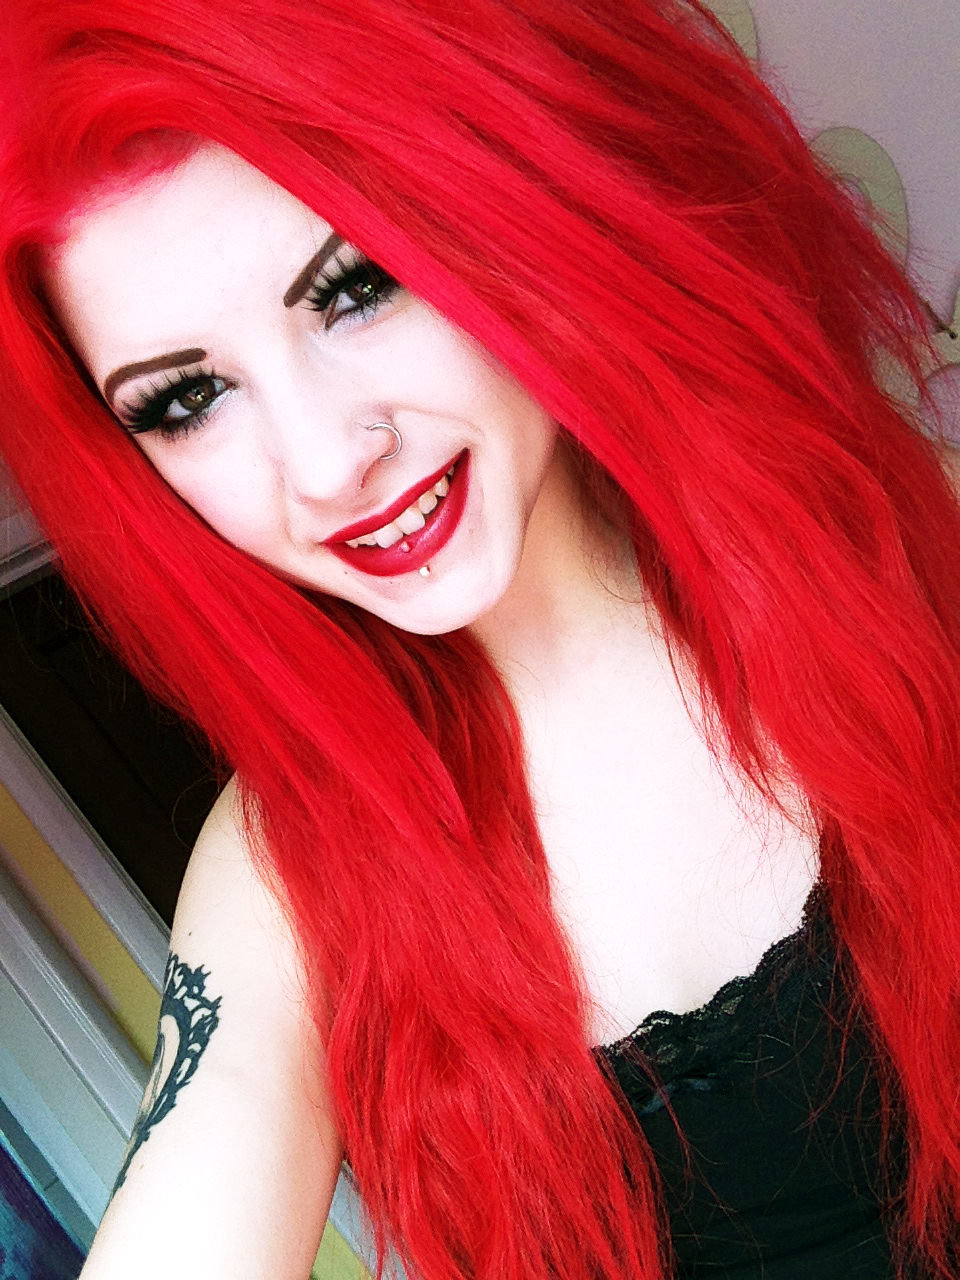 Red hair or ginger hair occurs naturally in 12 of the human population It occurs more frequently 26 in people of northern or western European ancestry